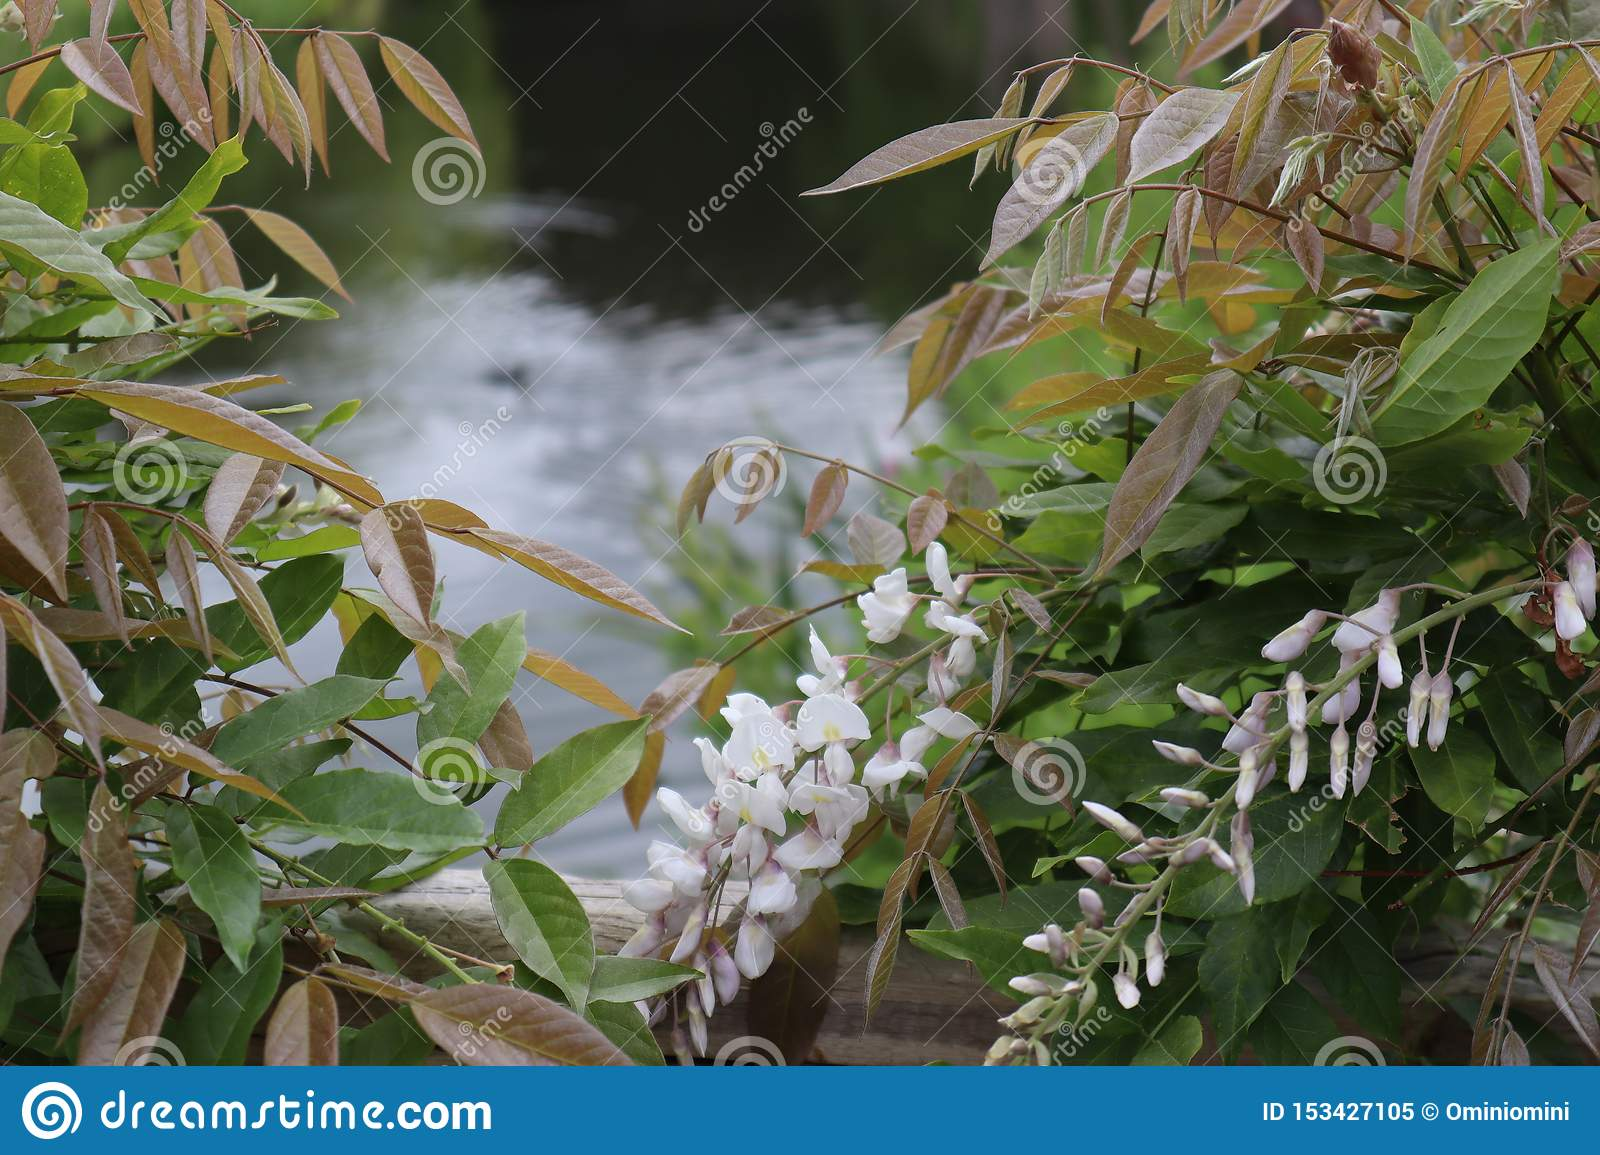 View of the pond through the bush of the flowering White Wisteria